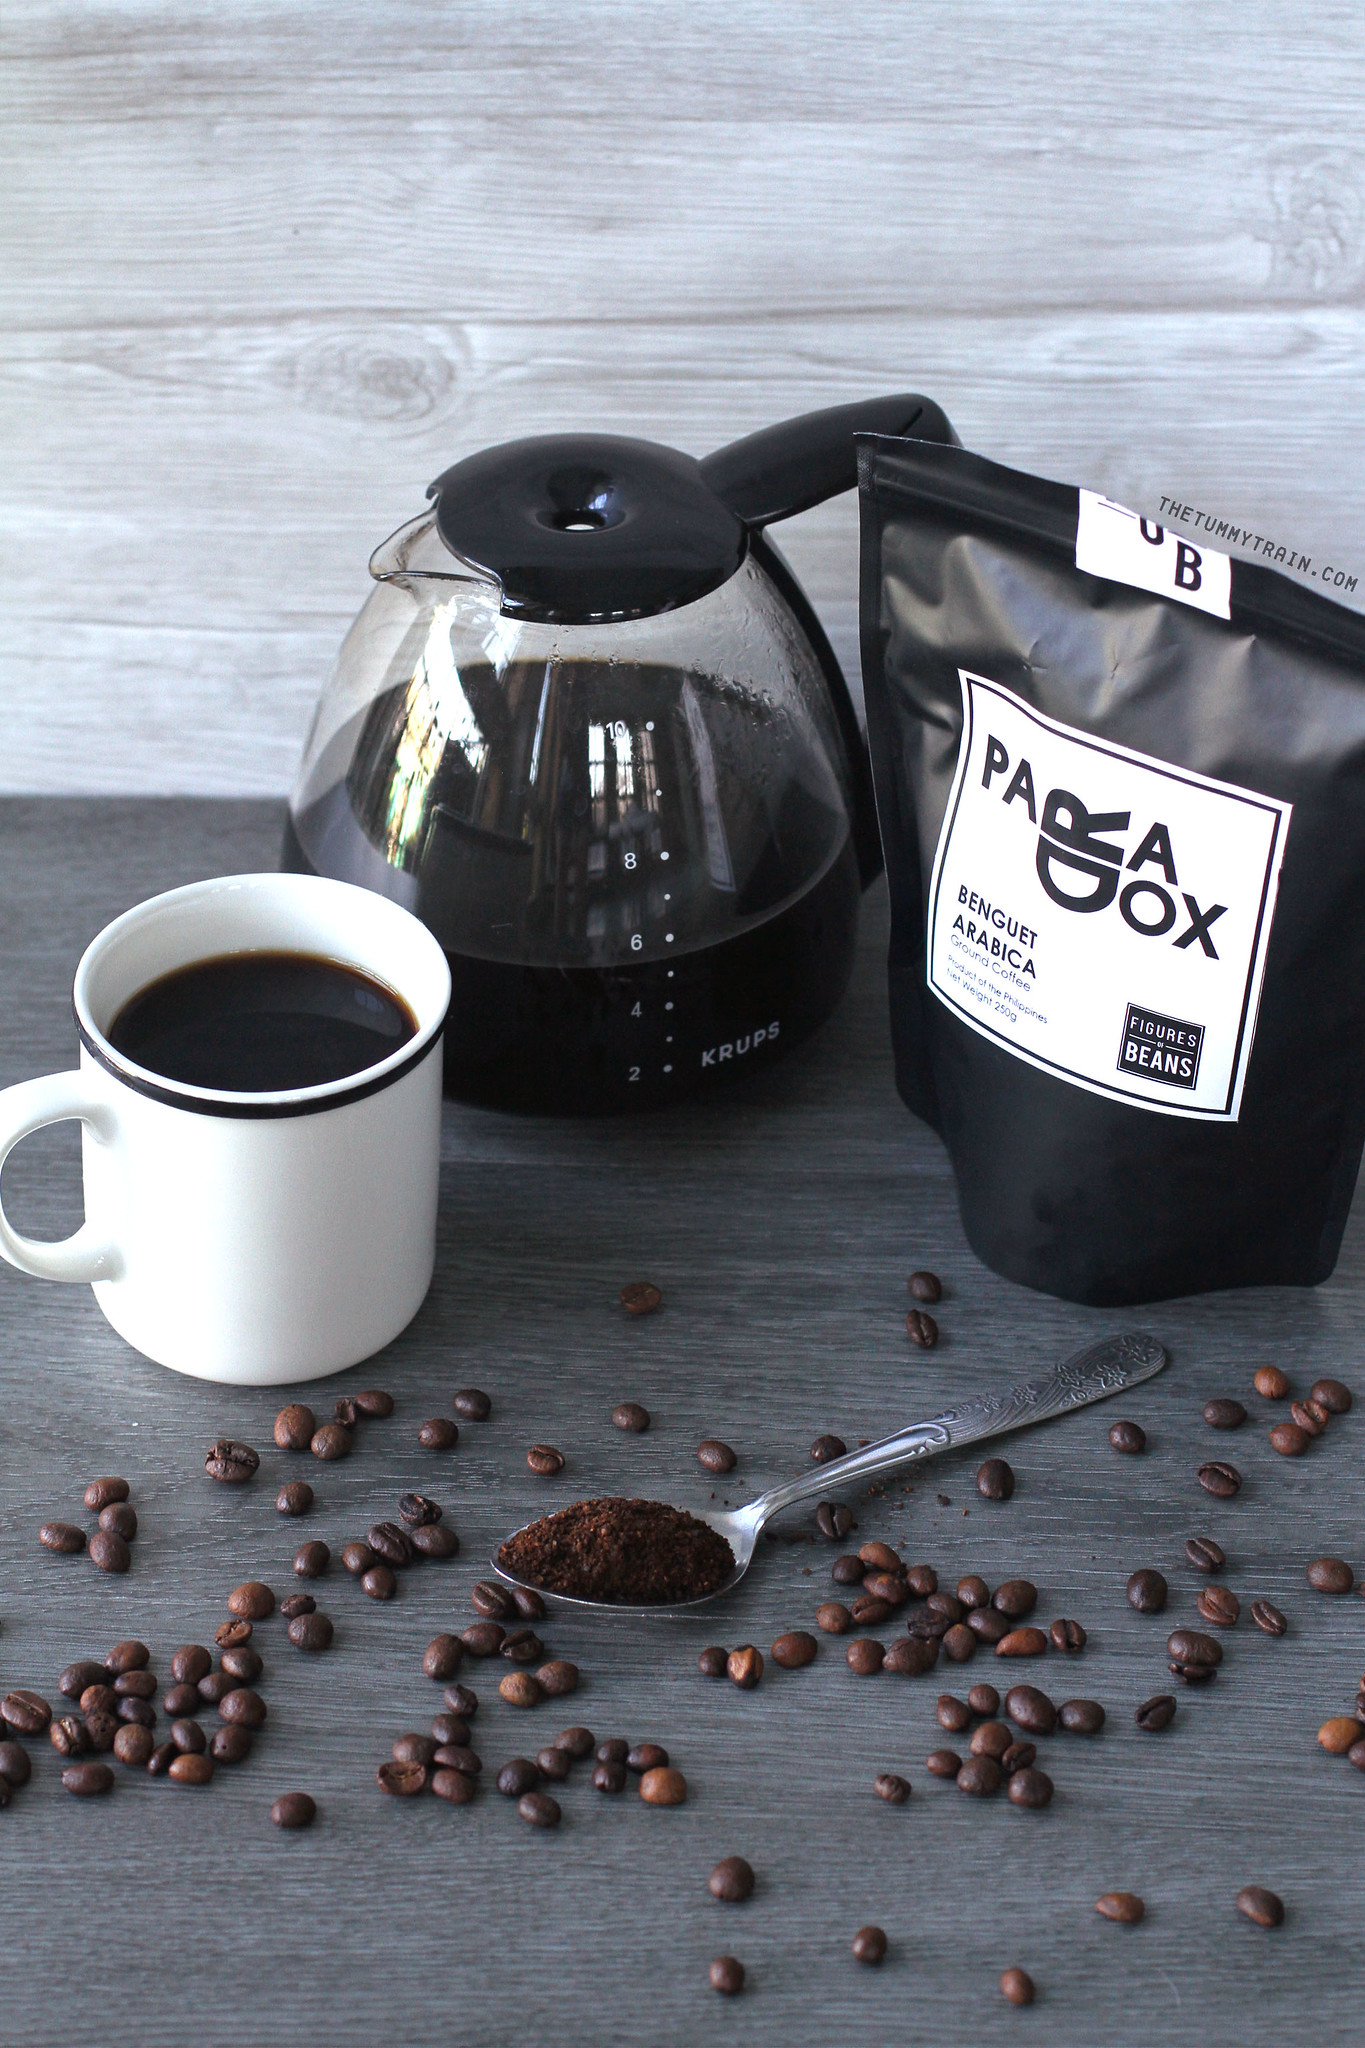 32868411433 d5cadc9b83 k - Figures of Beans brings coffee from Cordillera straight to your door